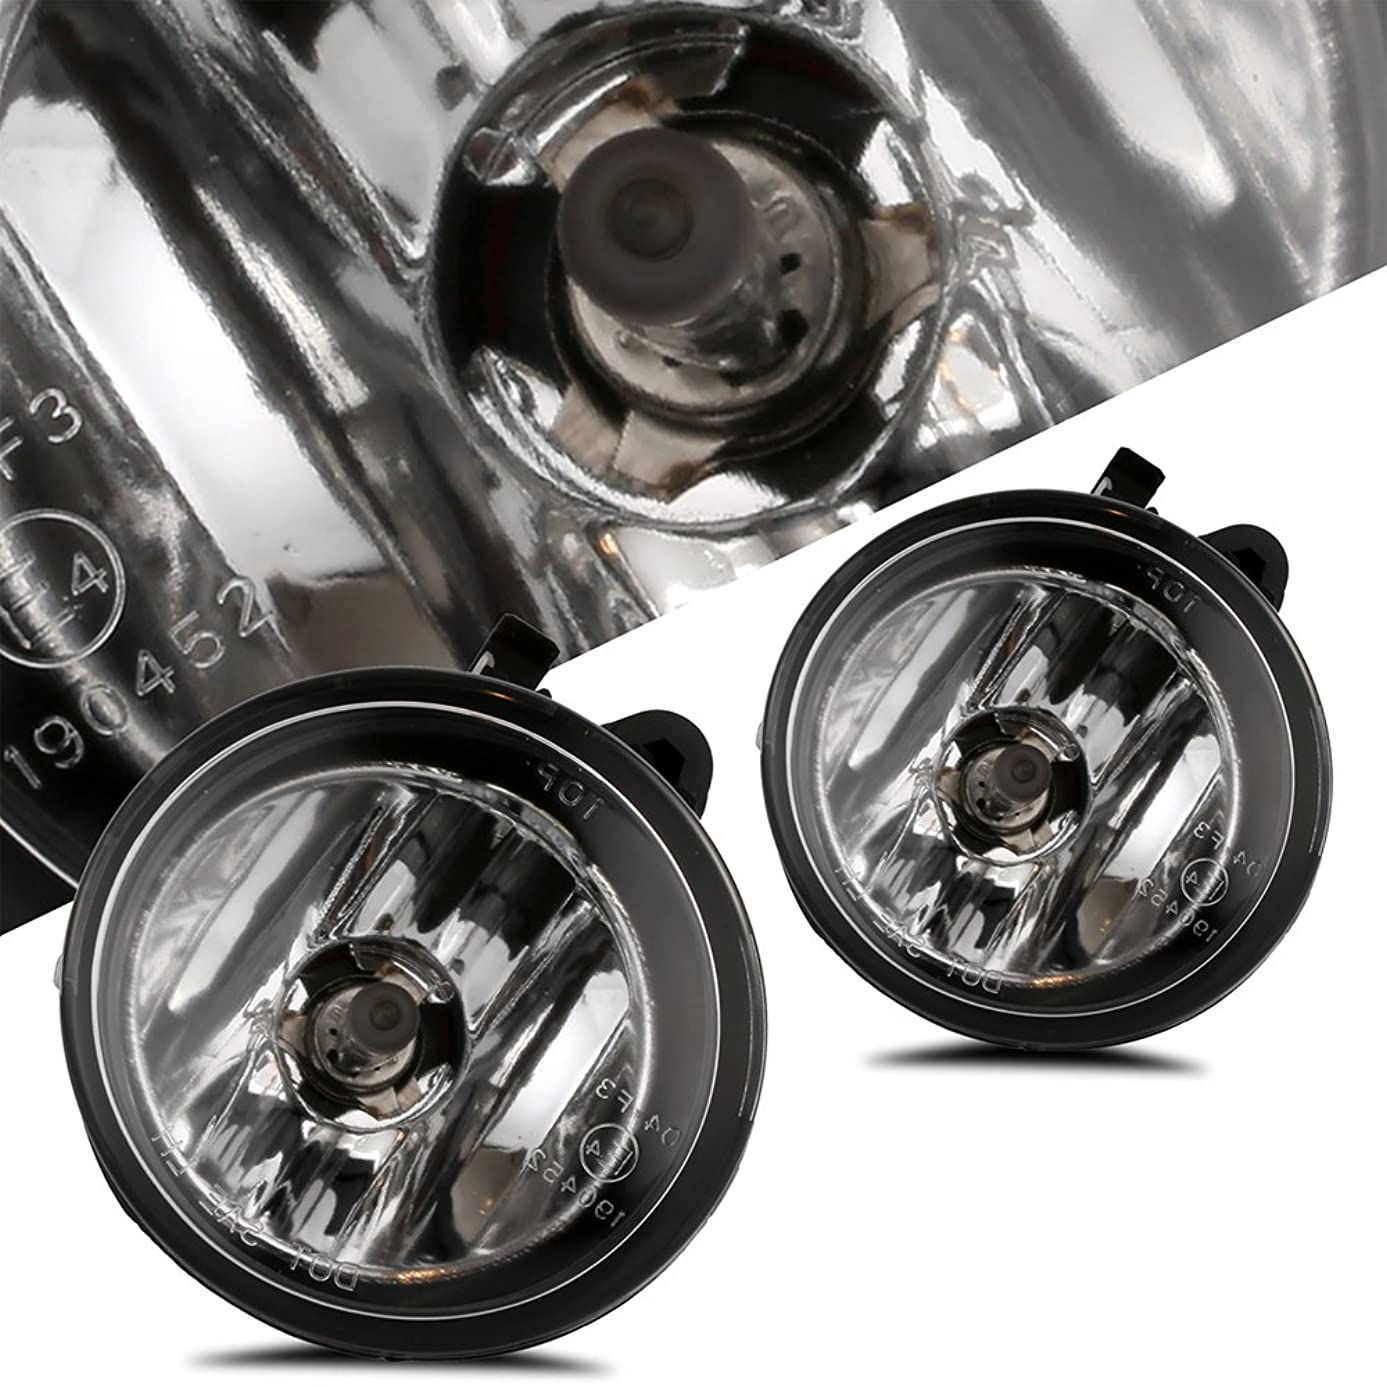 Scitoo Fog Light Assembly Kit fit BMW X3 2011 2012 2013 2014 2015 2016 2017 Fog Lamp With Clear Lens In Pair